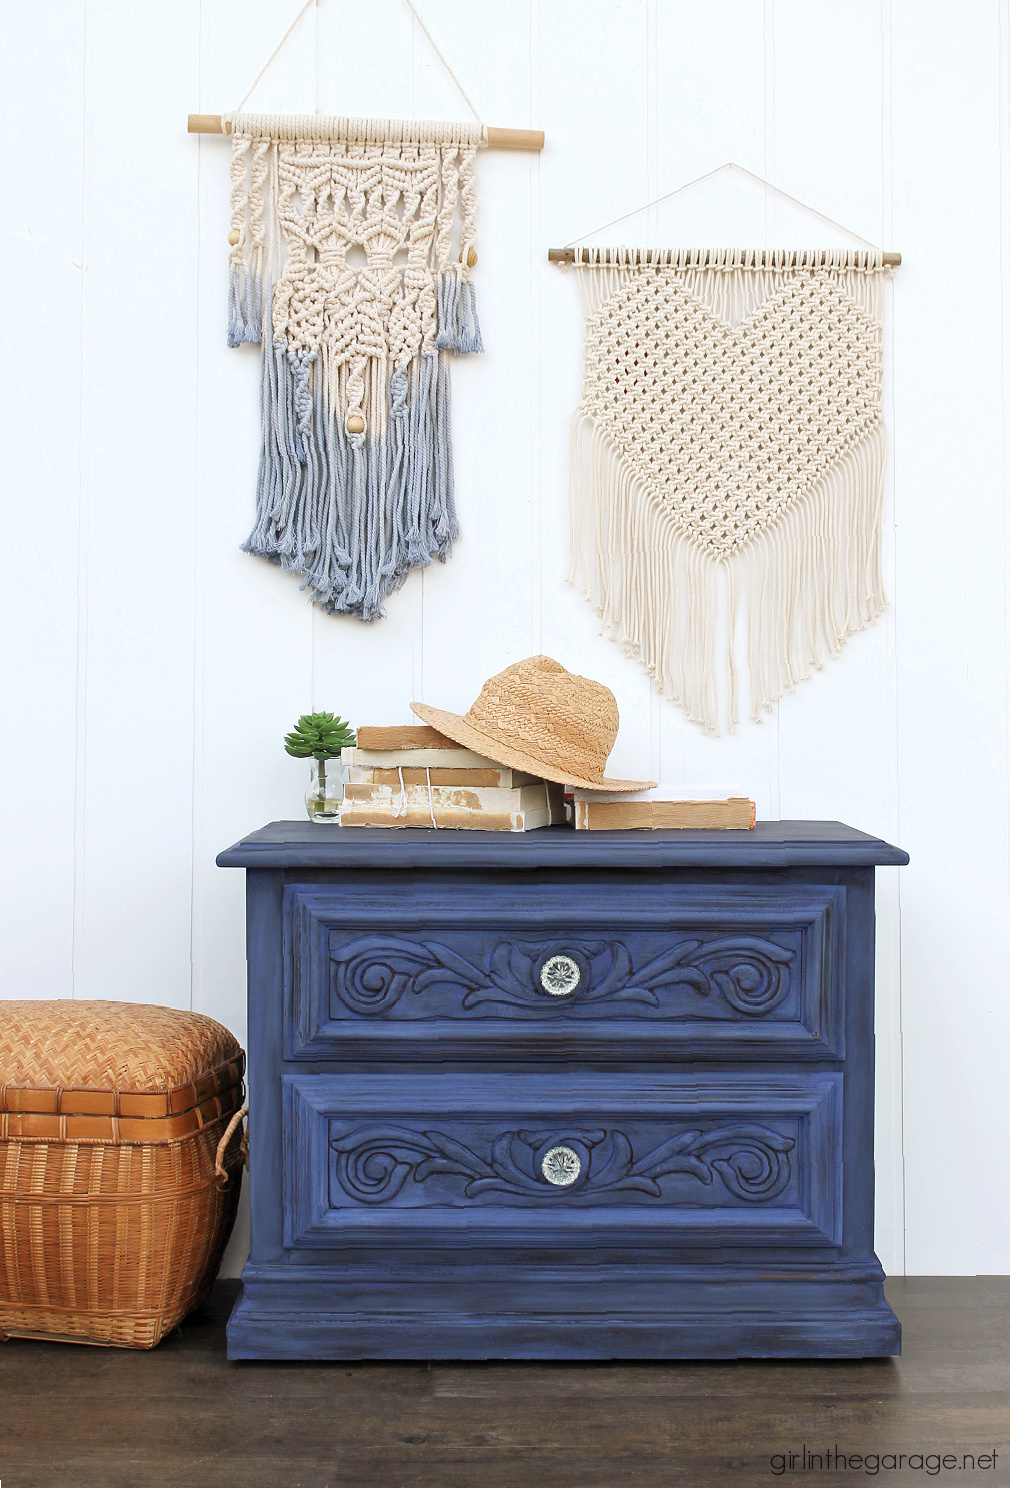 Create a statement piece with a bold blue Chalk Painted nightstand. DIY painted furniture ideas by Girl in the Garage